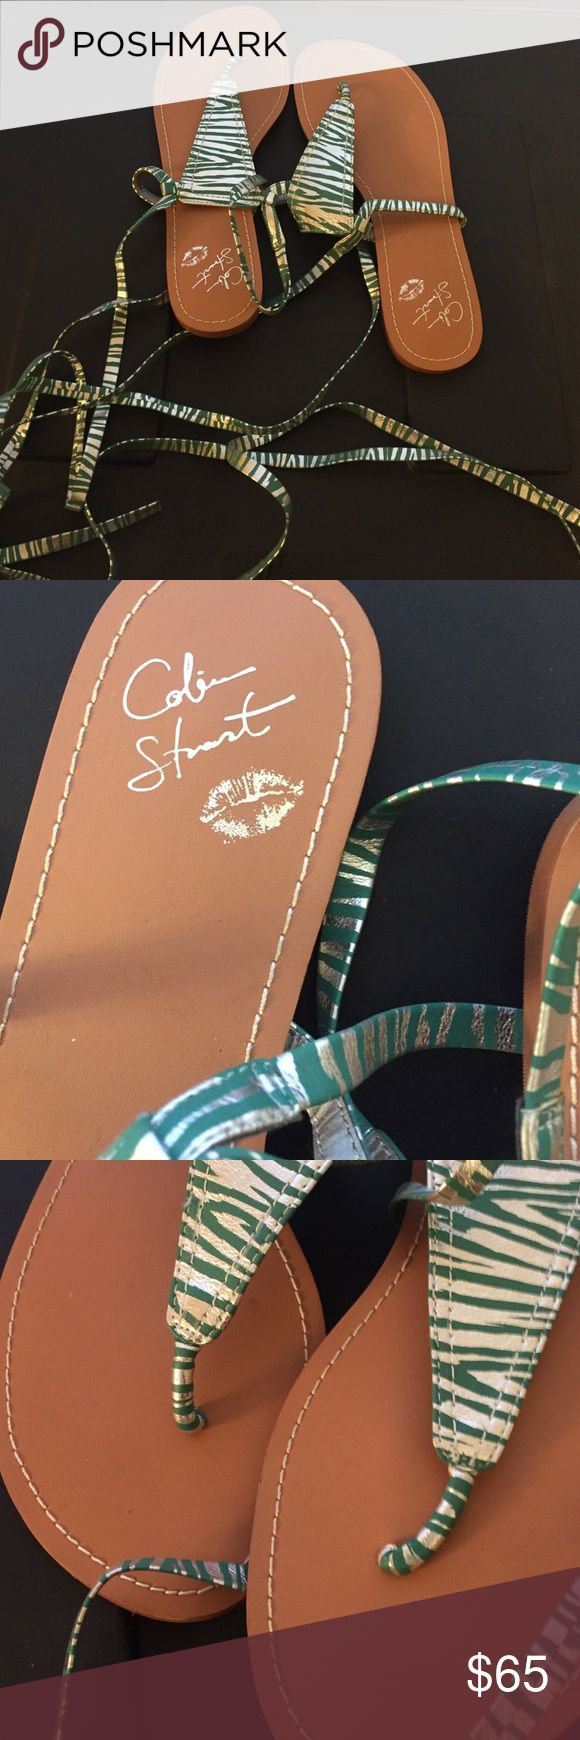 Colin Stuart wrap around sandals Brand new never worn green and silver sandals that can be worn a multitude of ways. Tie around ankles or up to mid calves. Colin Stuart Shoes Sandals